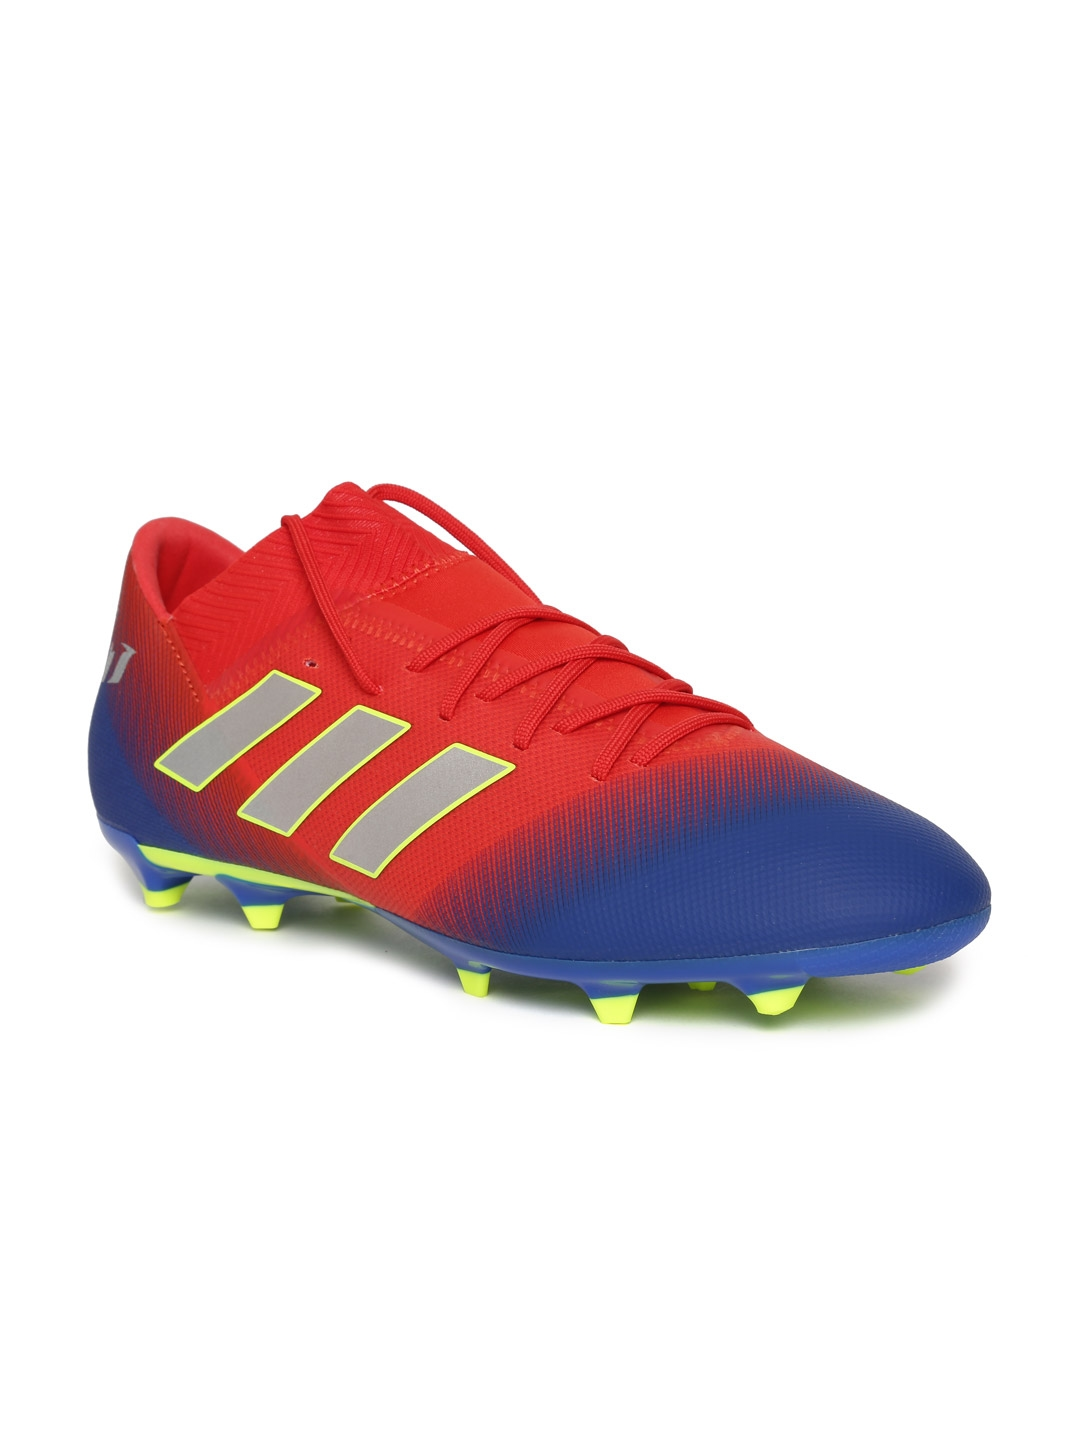 d015c489c ADIDAS Men Red & Blue NEMEZIZ Messi 18.3 FG Colourblocked Football Shoes